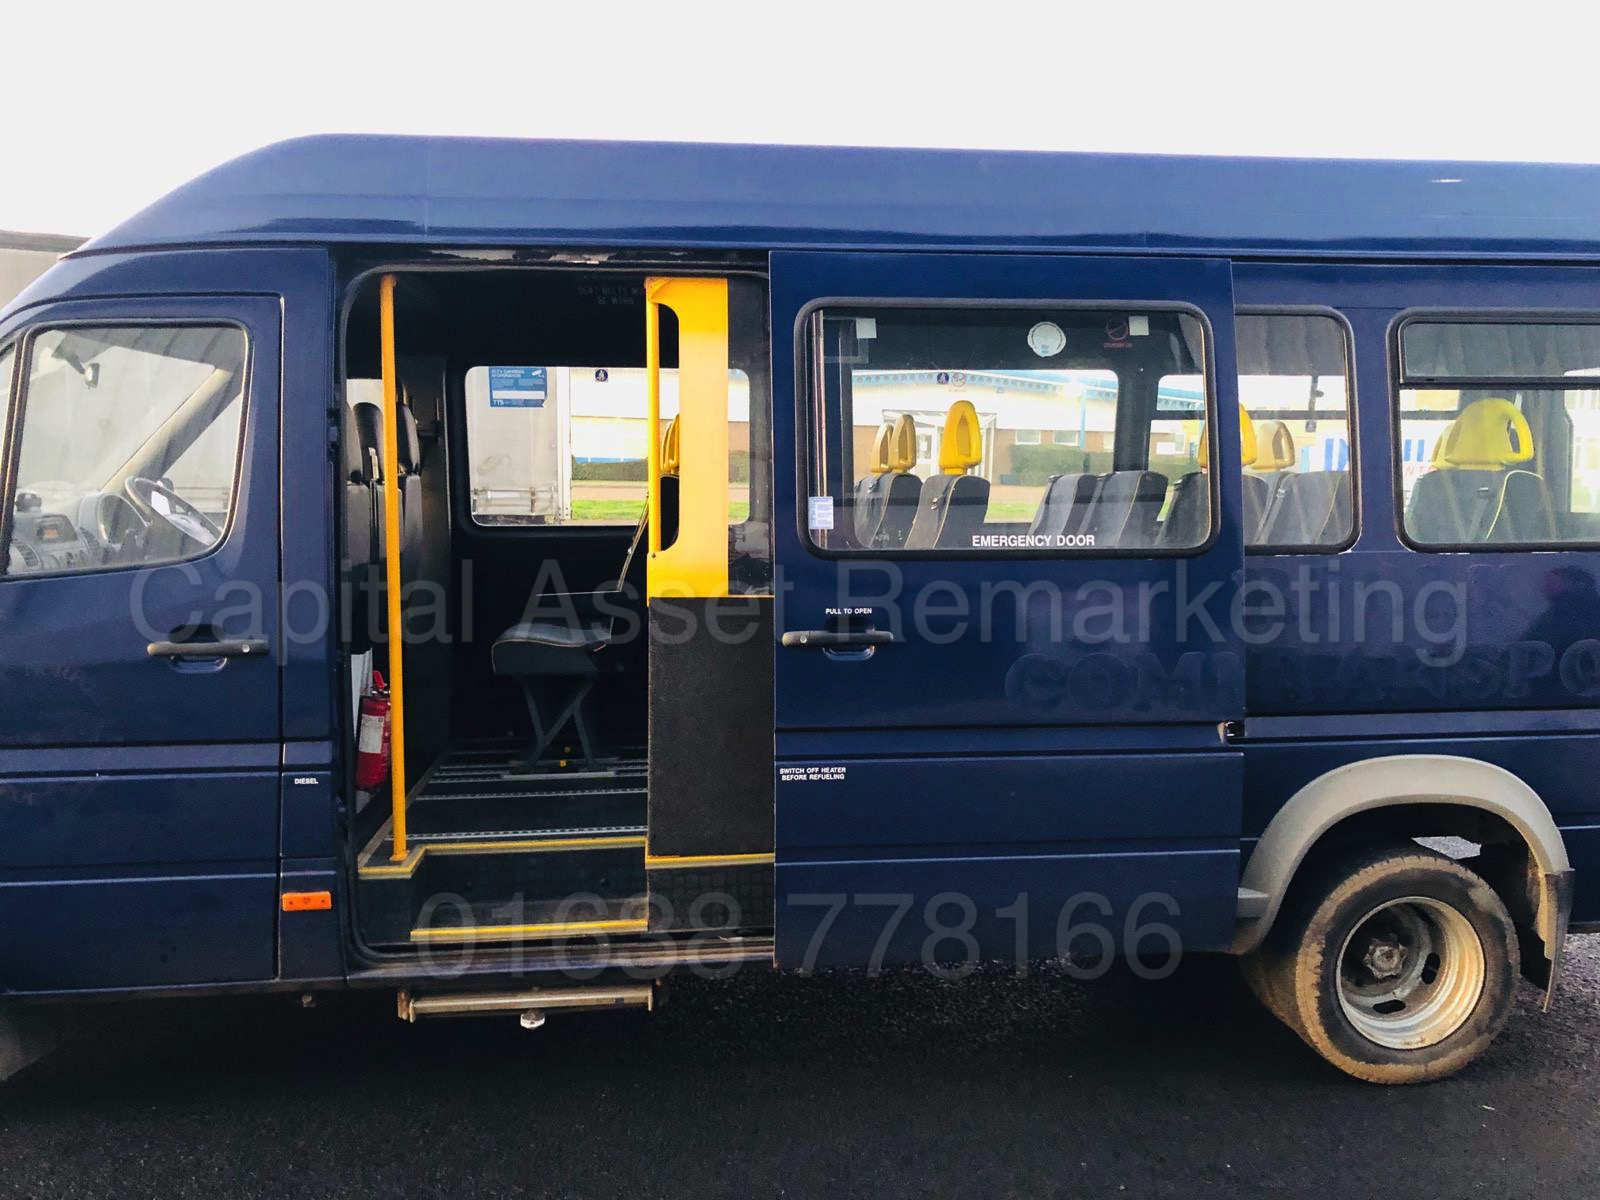 Lot 28 - MERCEDES SPRINTER 411 CDI *LWB - 16 SEATER MINI-BUS* (2006) 'QUICK RELEASE SEATS - WHEEL CHAIR LIFT*